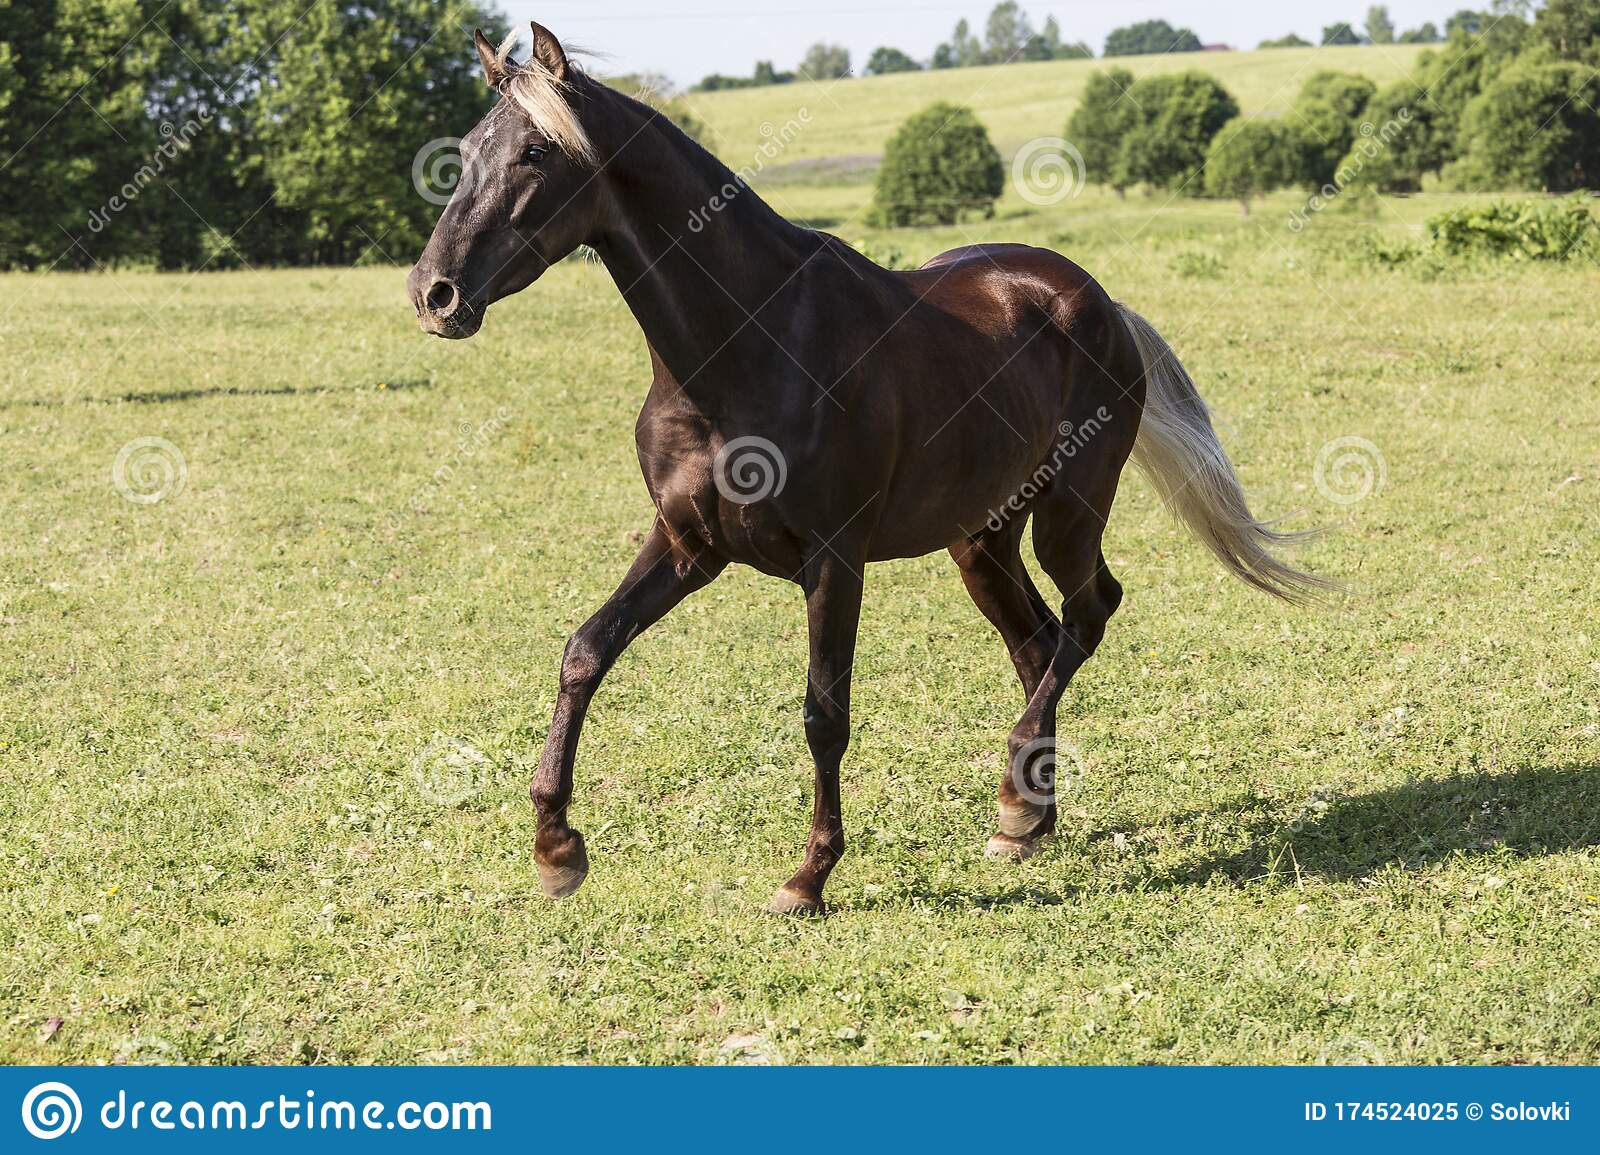 A Silver Black Horse Breed Rocky Mountains Horse Gallops Across A Field Stock Image Image Of Gallops Field 174524025